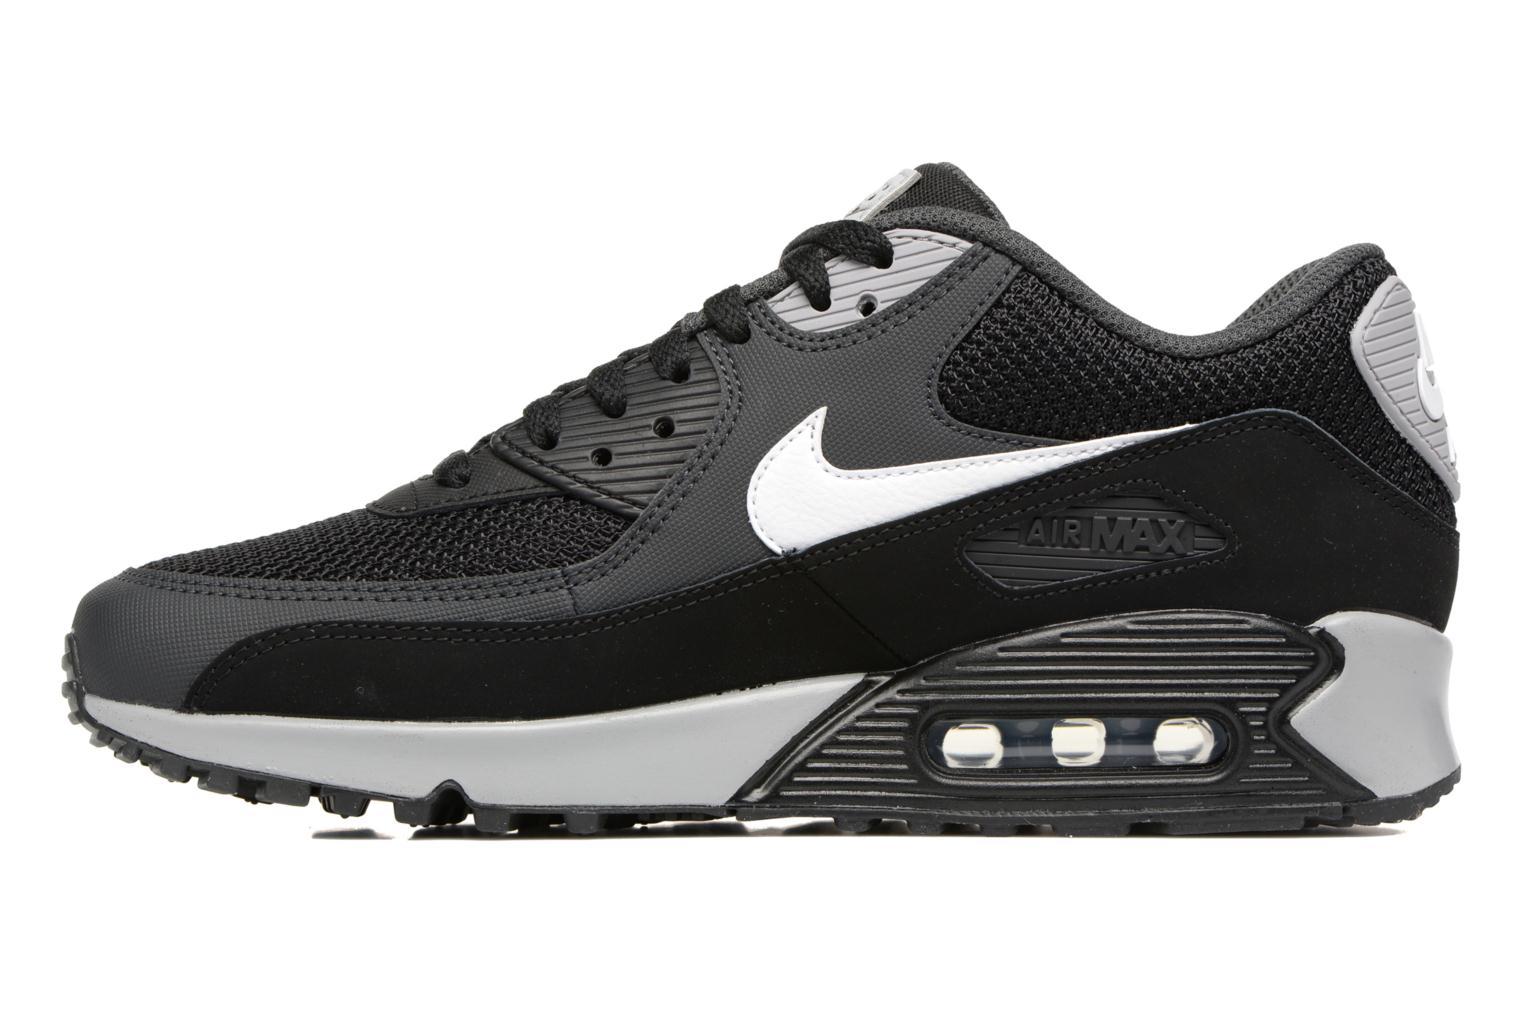 Nike Air Max 90 Essential Black/White-Anthracite-Wolf Grey